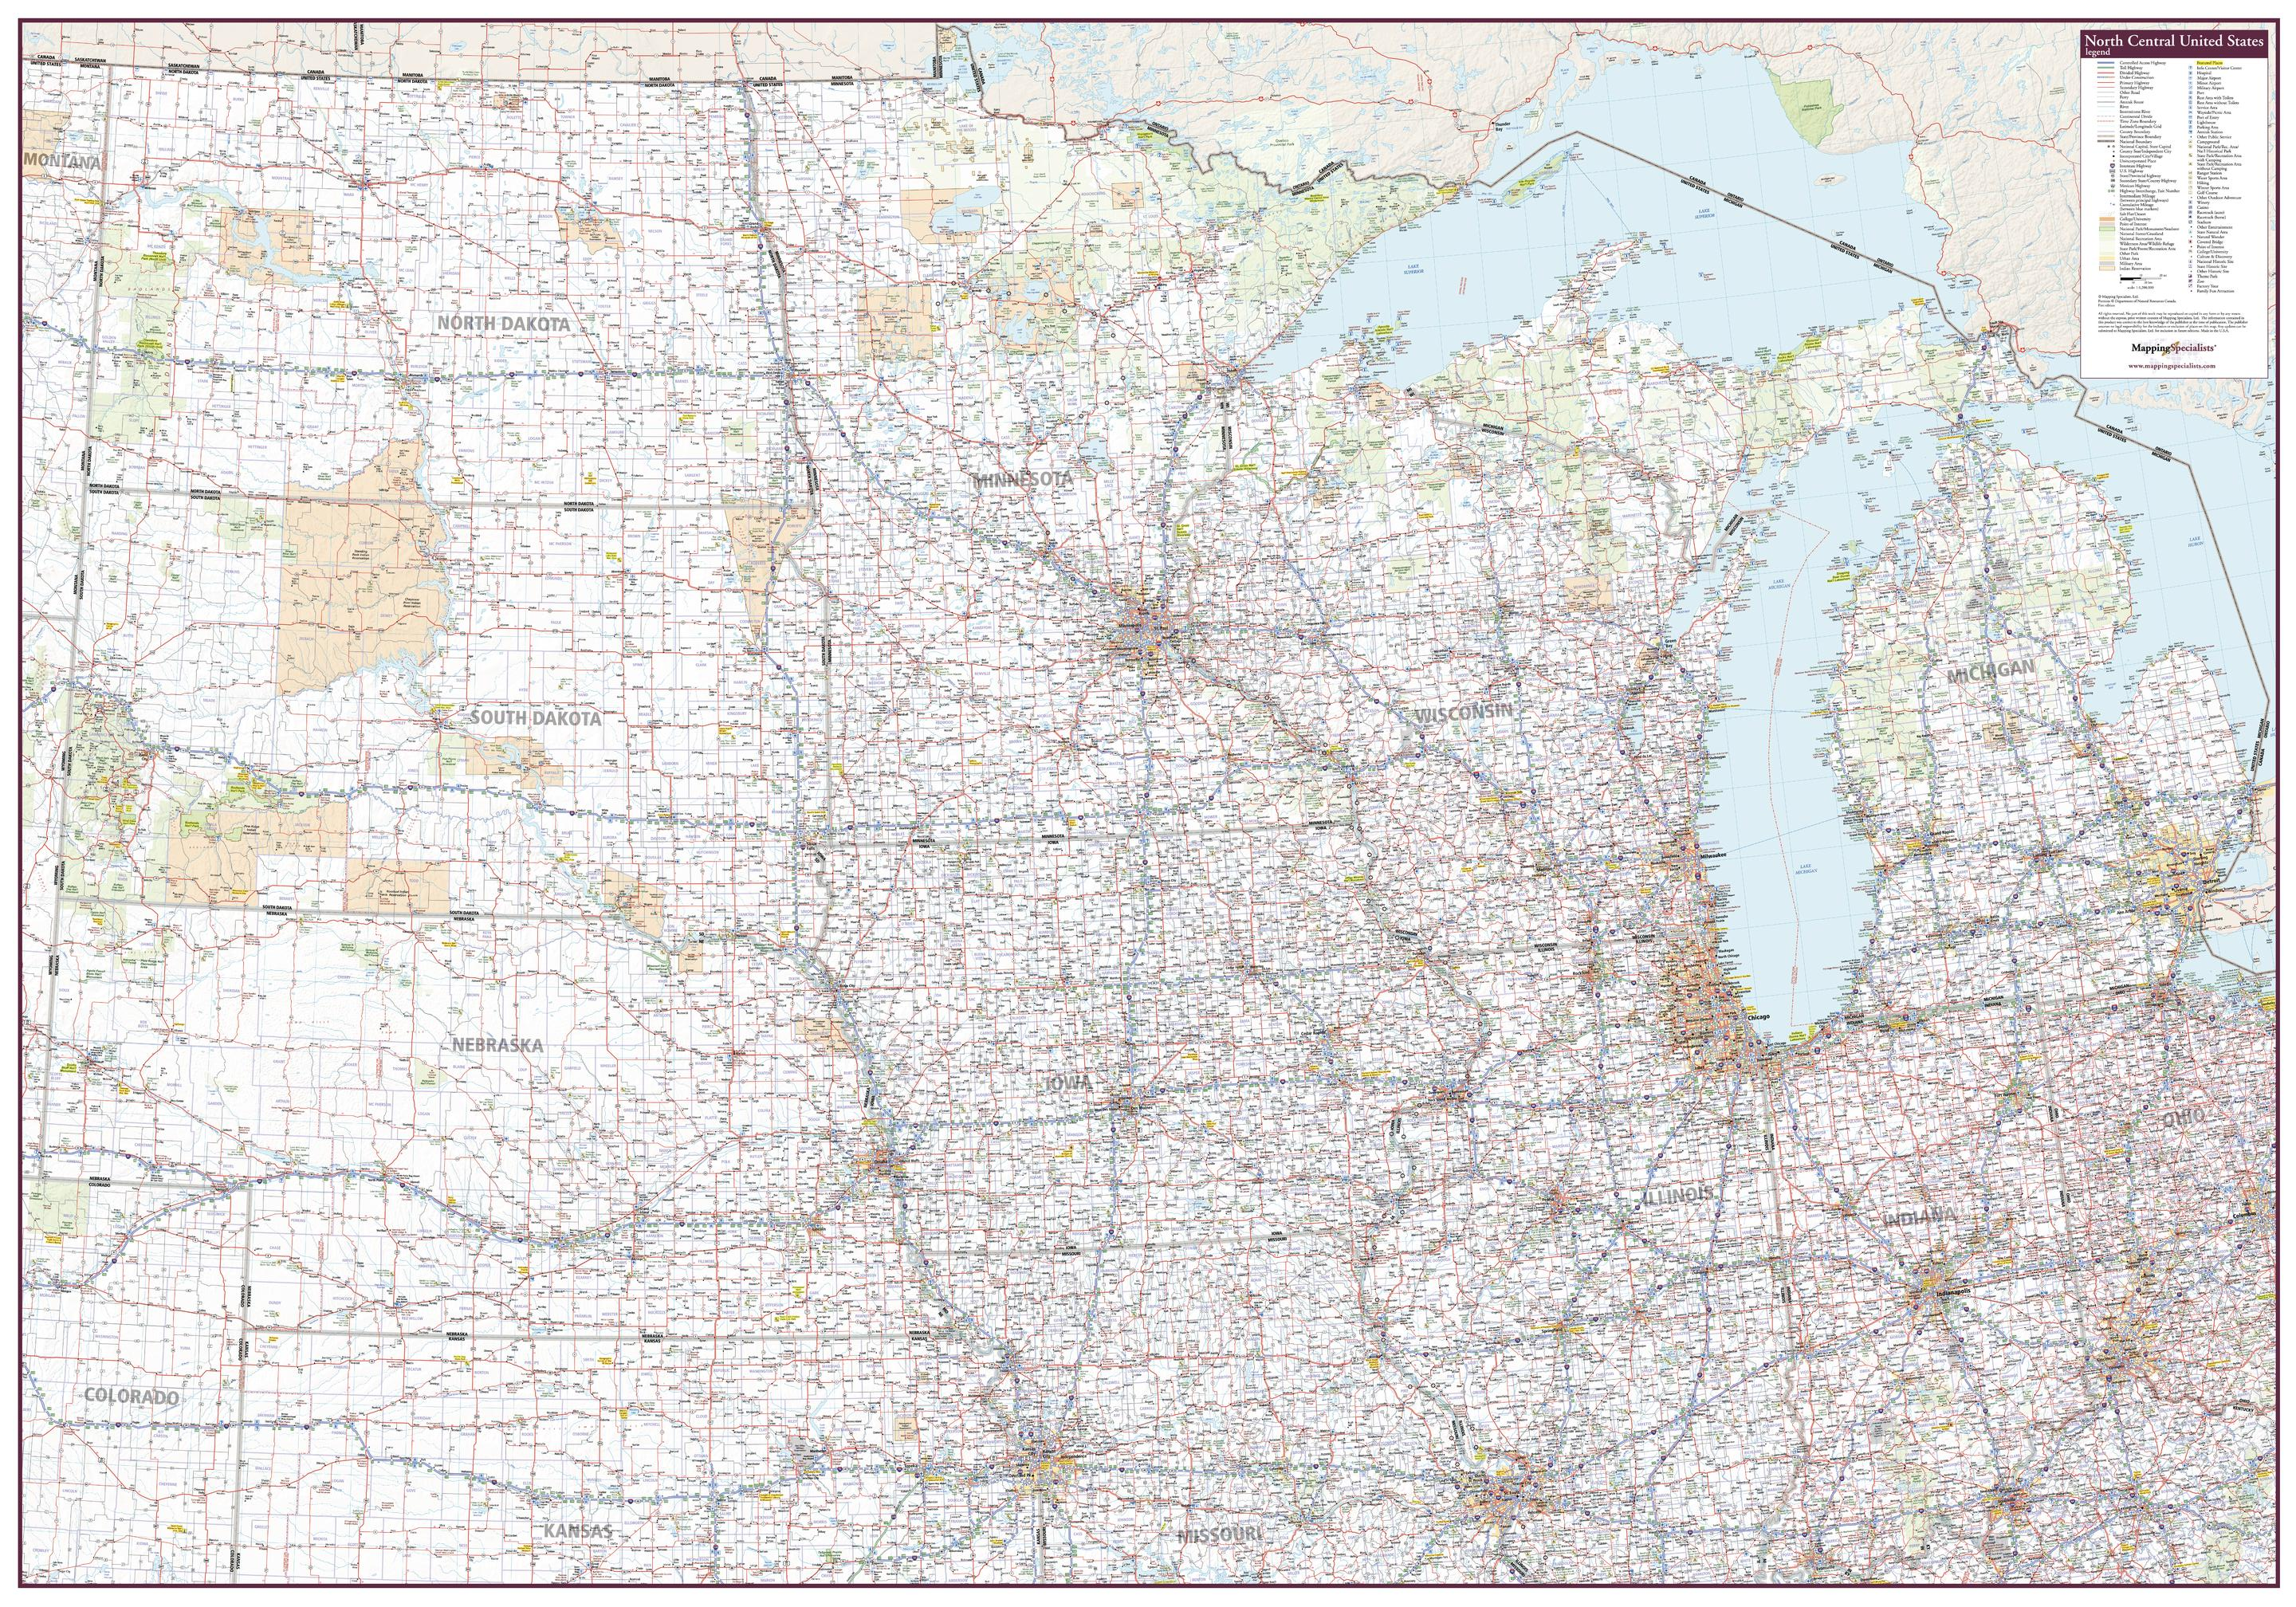 North Central Us Map.North Central United States Wall Map